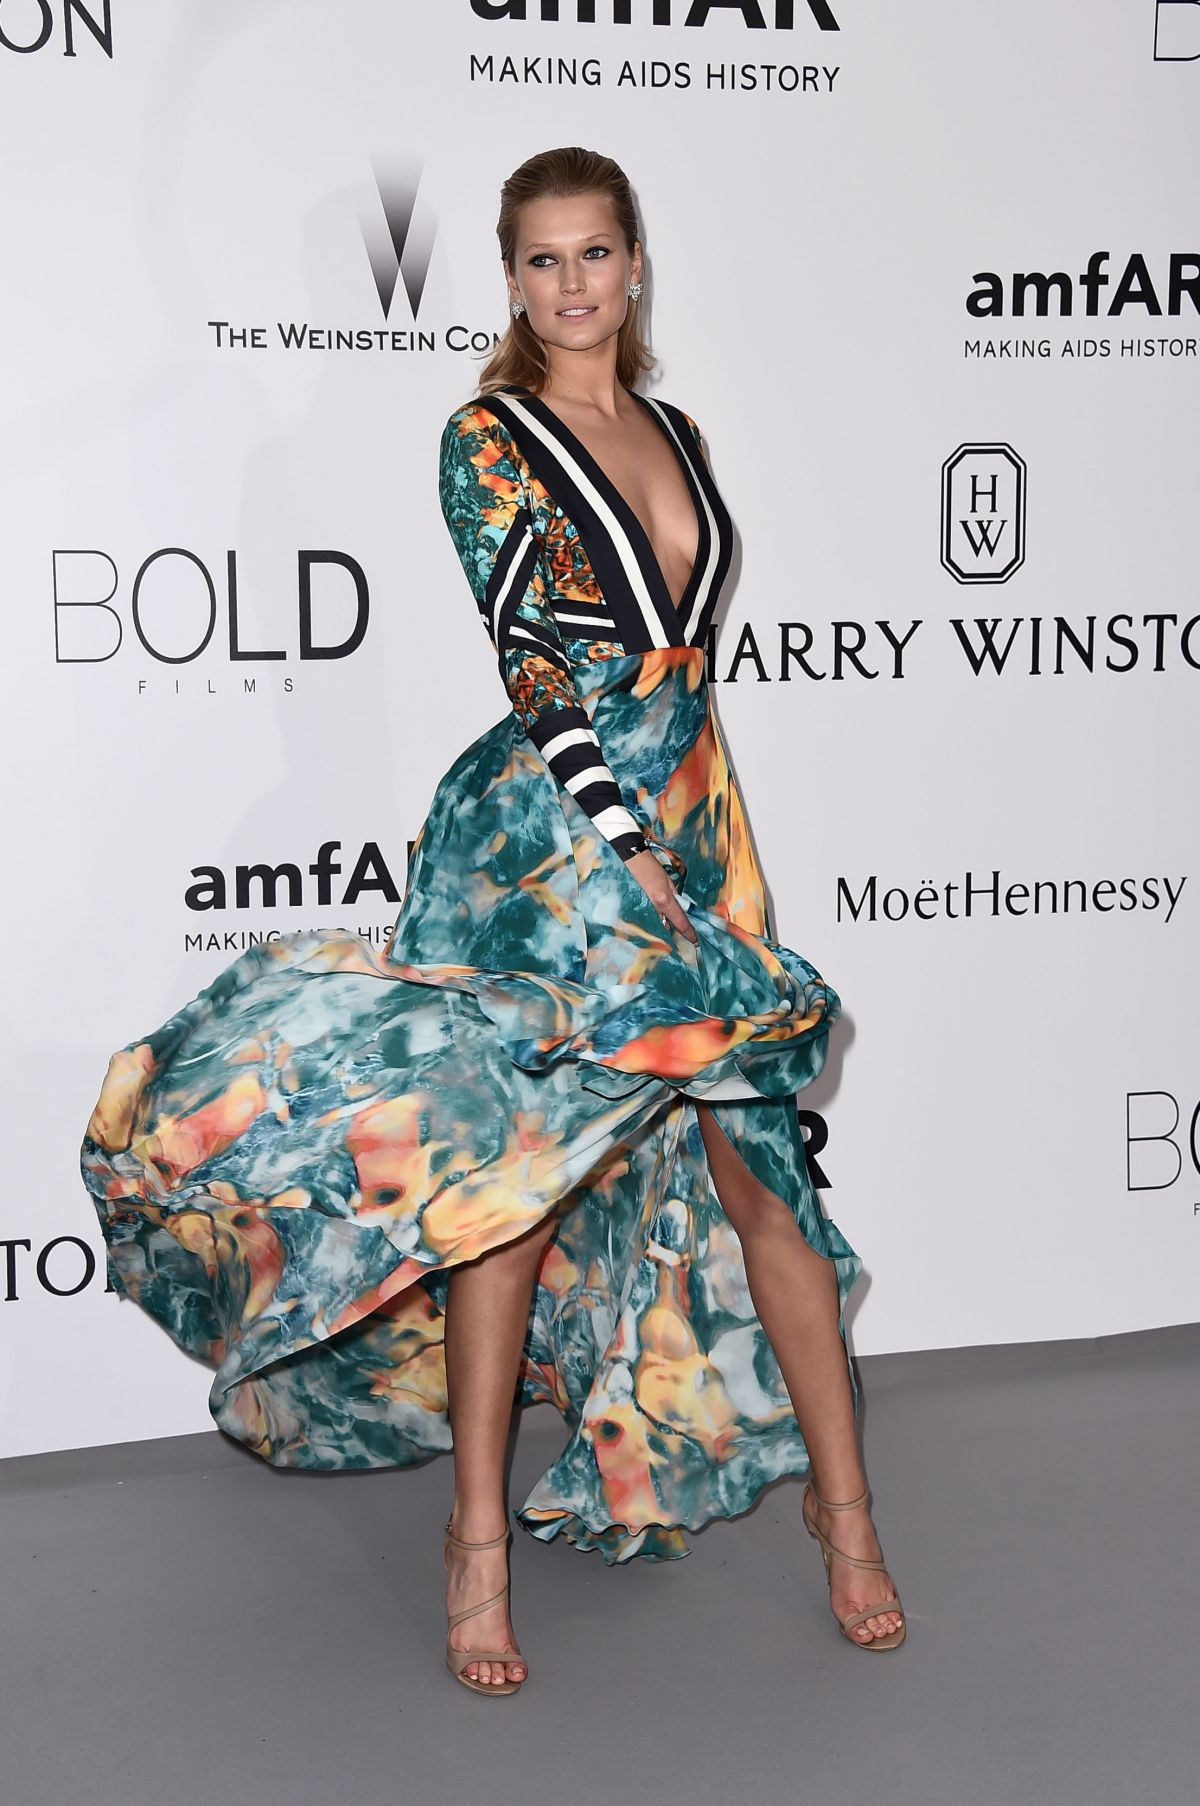 toni-garrn-amfar-s-22nd-cinema-against-aids-gala-antibes-may-21-2015-s-e246994312d92077fb51e7a2f9de2a36_4.jpg